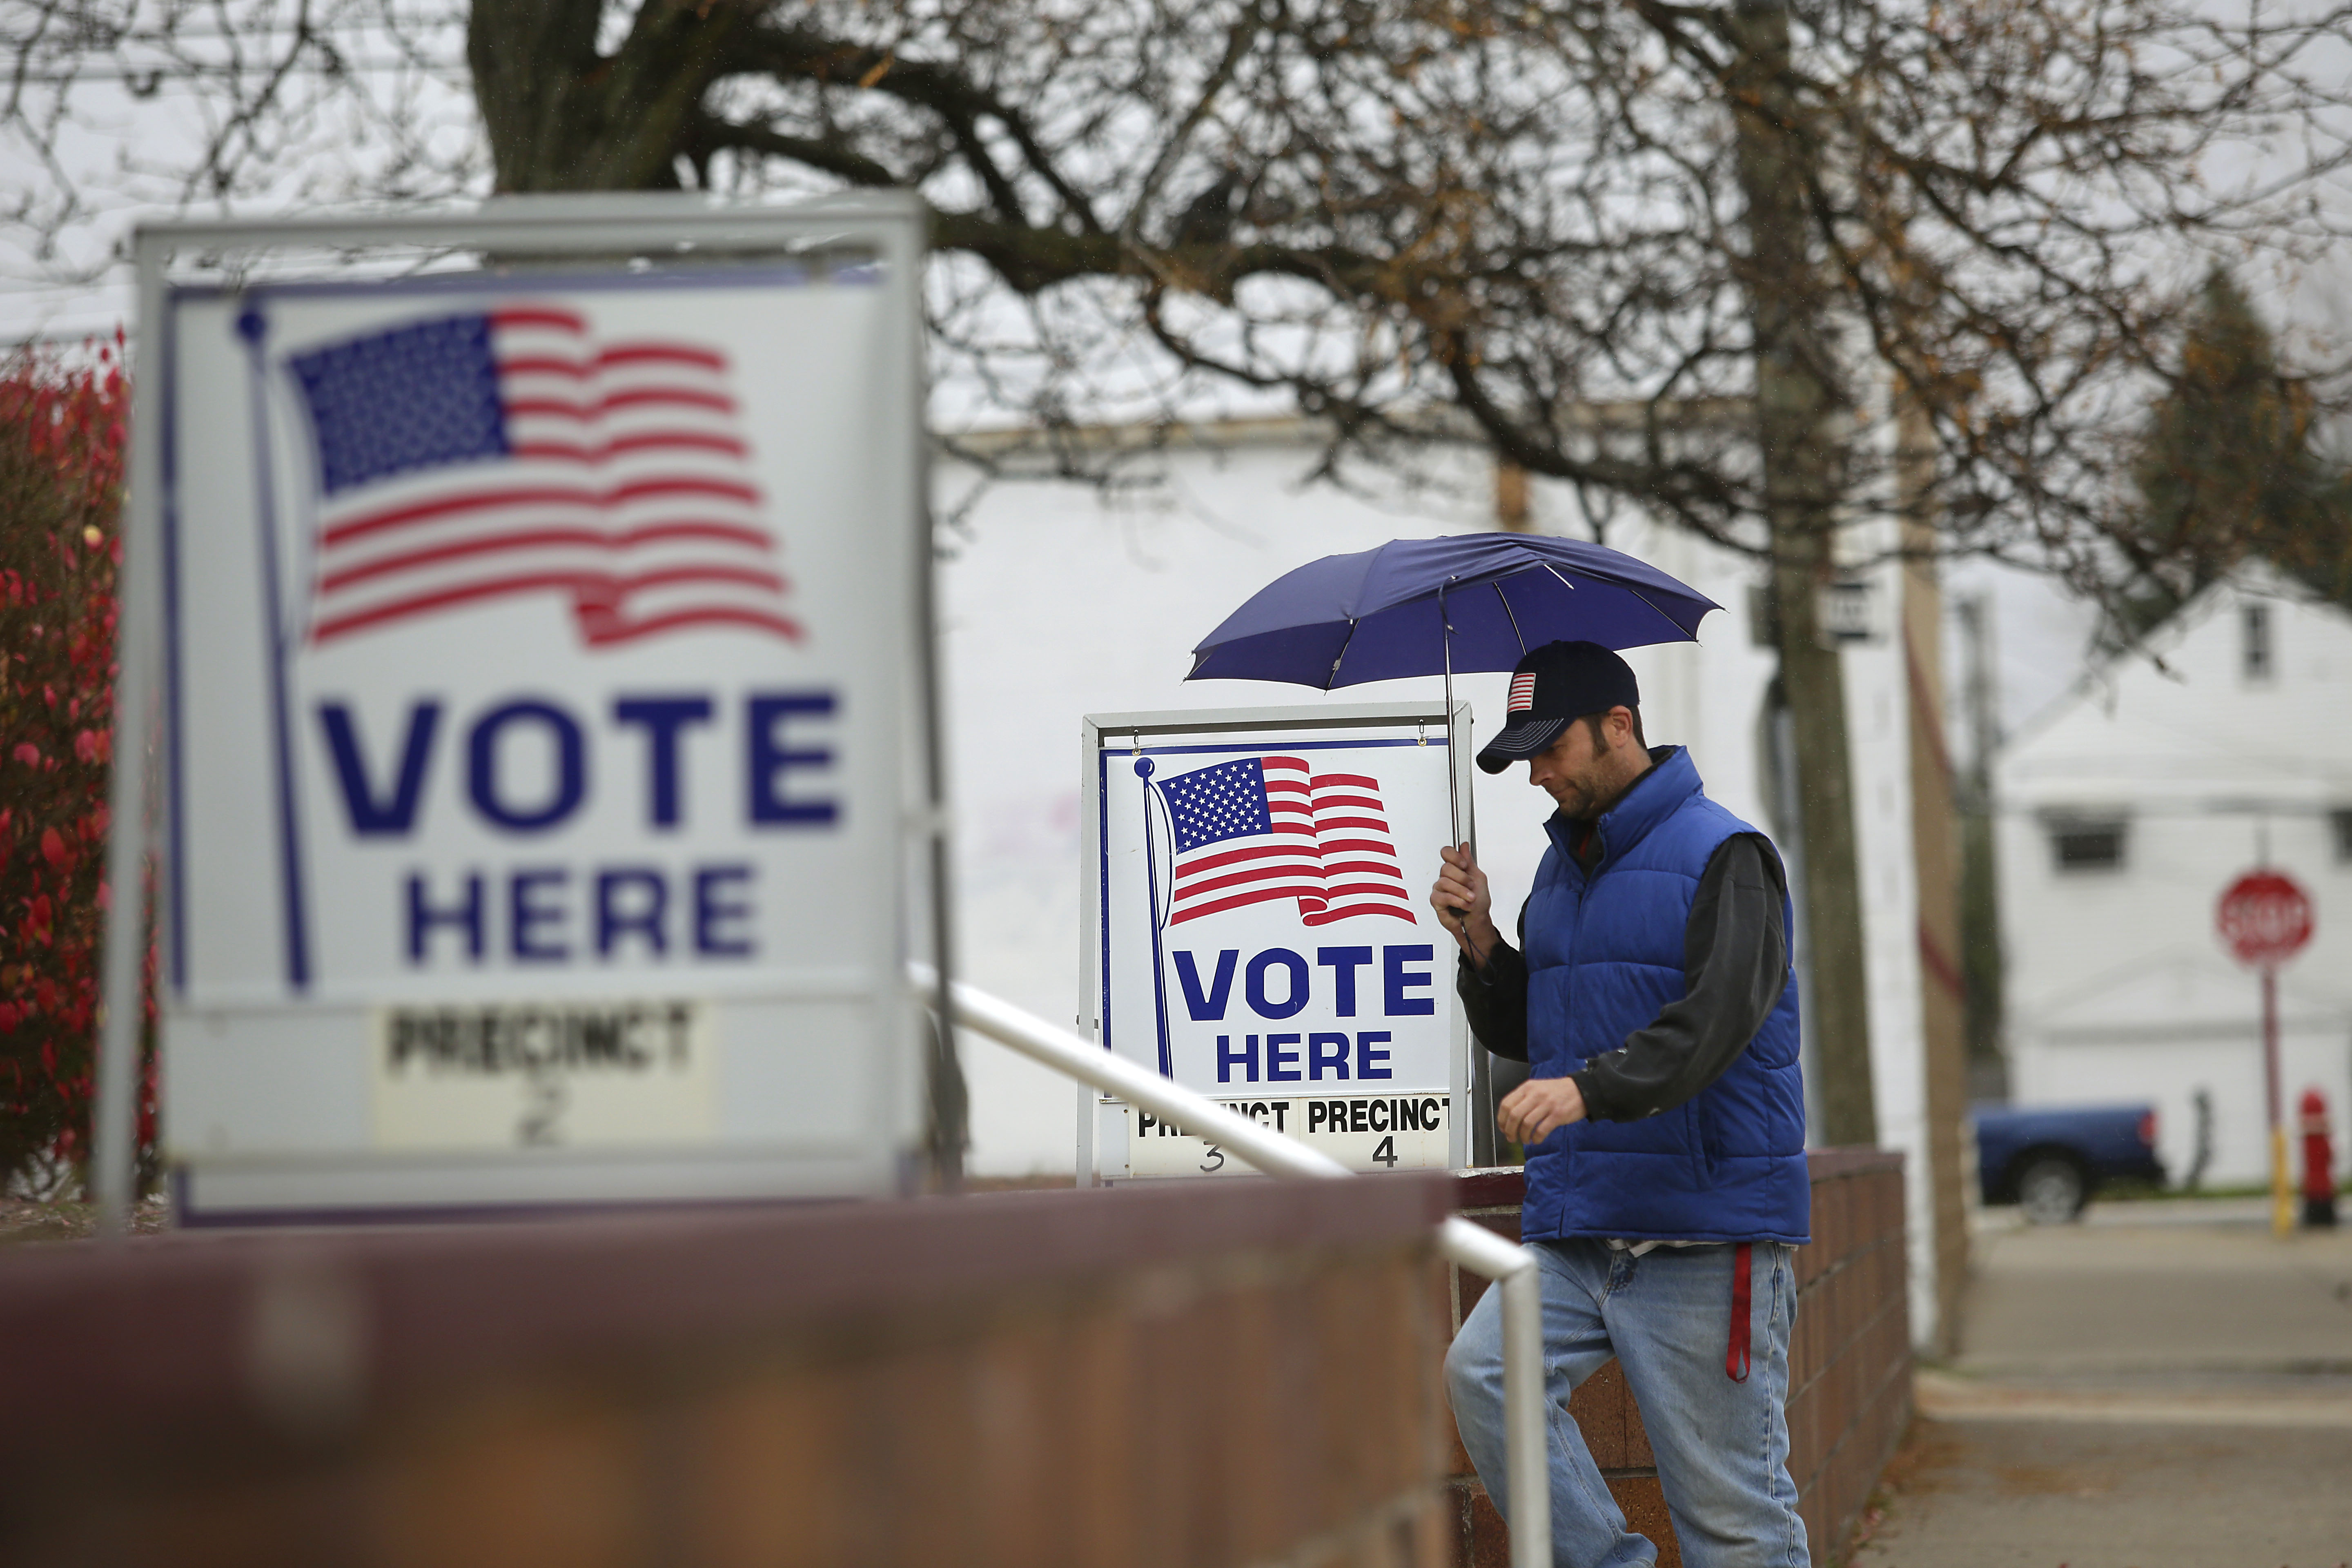 A man fills walks past voting signs displayed outside a polling station during the mid-term elections November 4, 2014 in Hamtramck, Michigan.